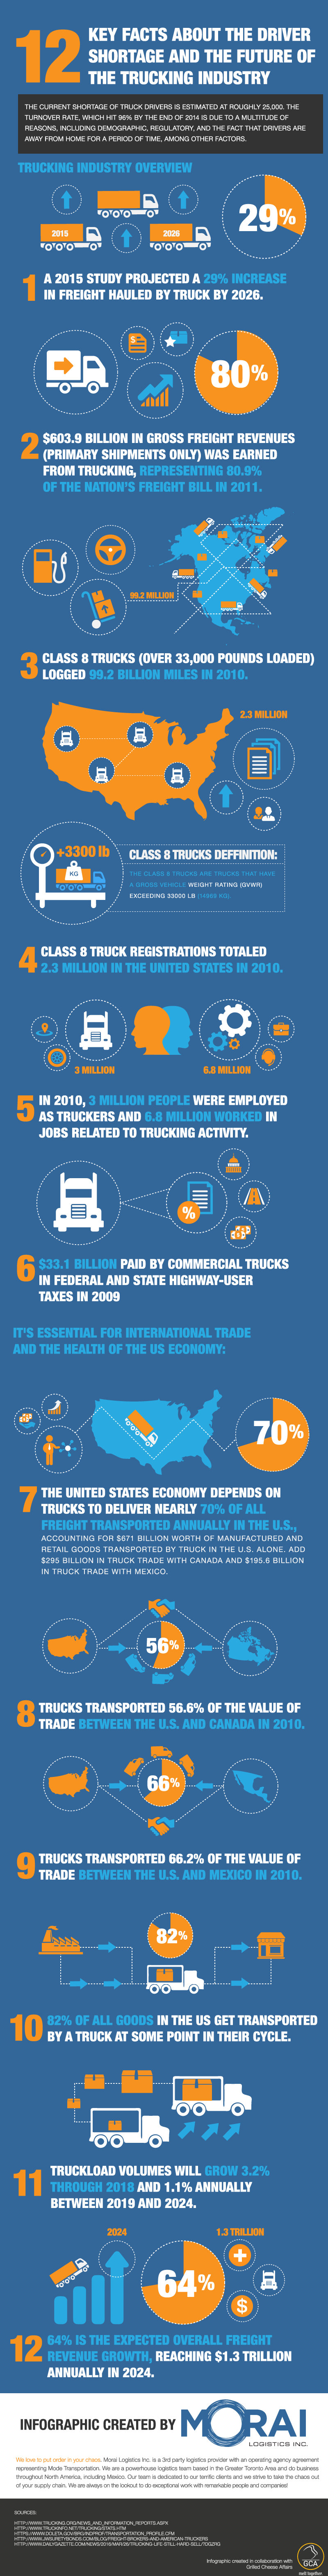 Morai-Logistics-12-Key-Facts-About-the-Truck-Driver-Shortage